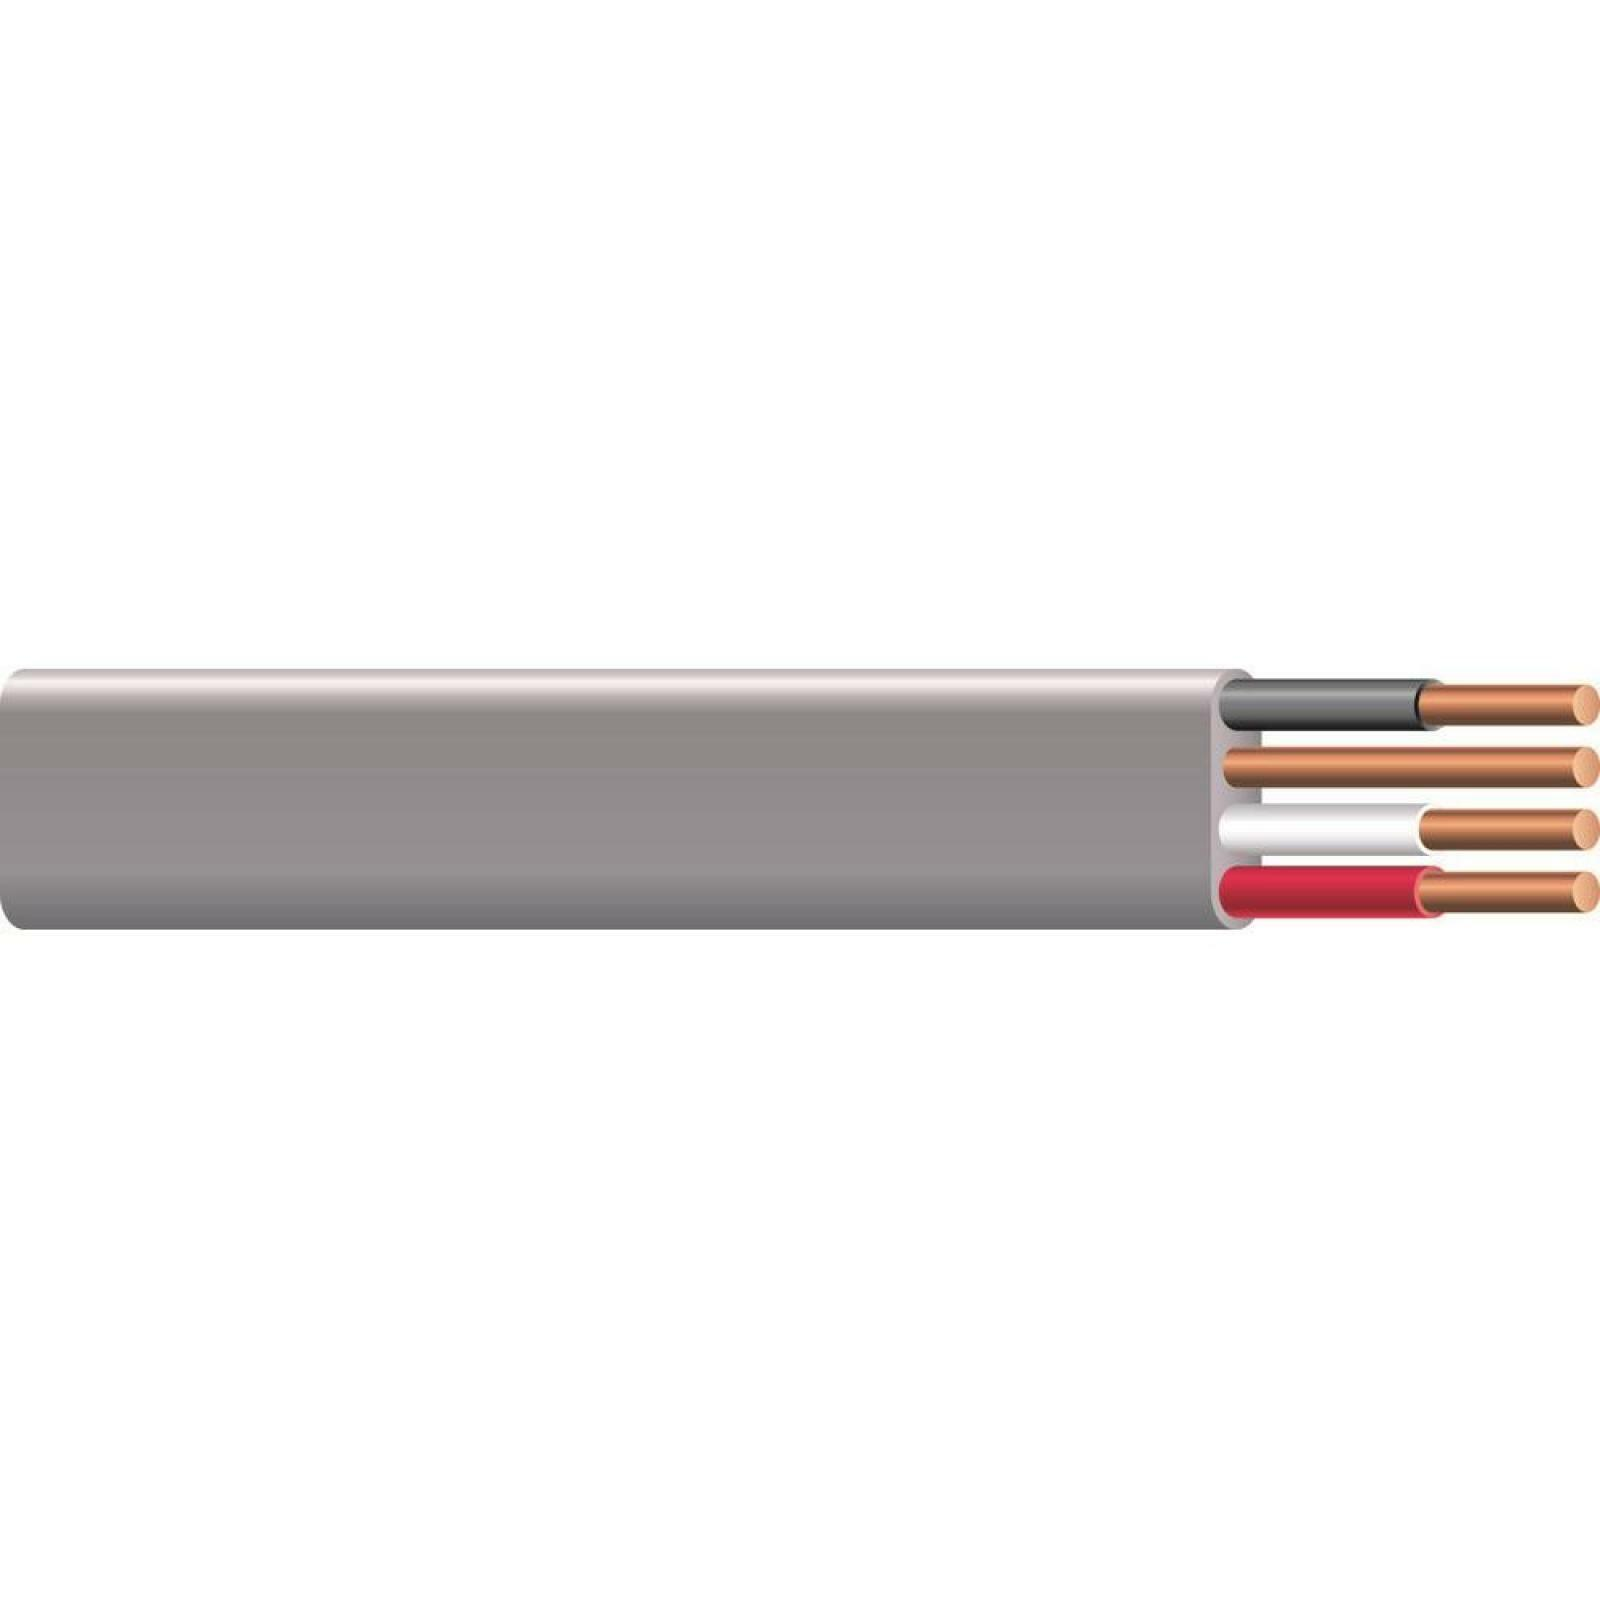 50 FEt 8/3 Gray Stranded Cu Uf B W/G Wire Outdoor Electrical Low Voltage Cable - $78.55